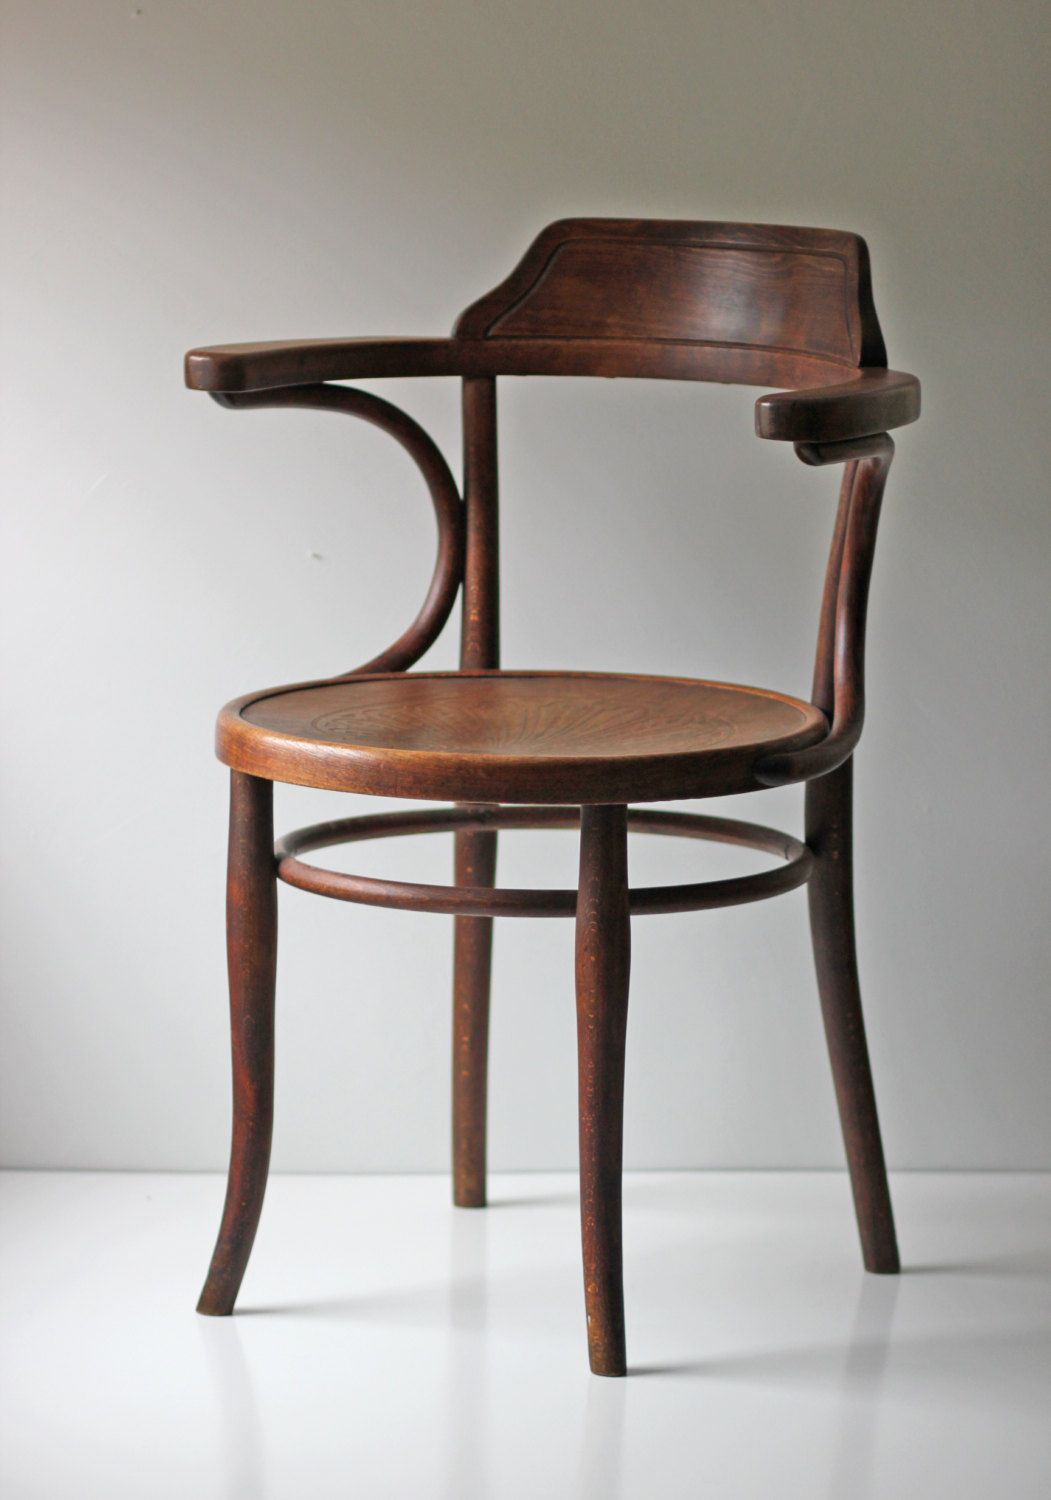 Exceptional Marked Thonet Cafe Bistro Bentwood Chair Via Etsy.